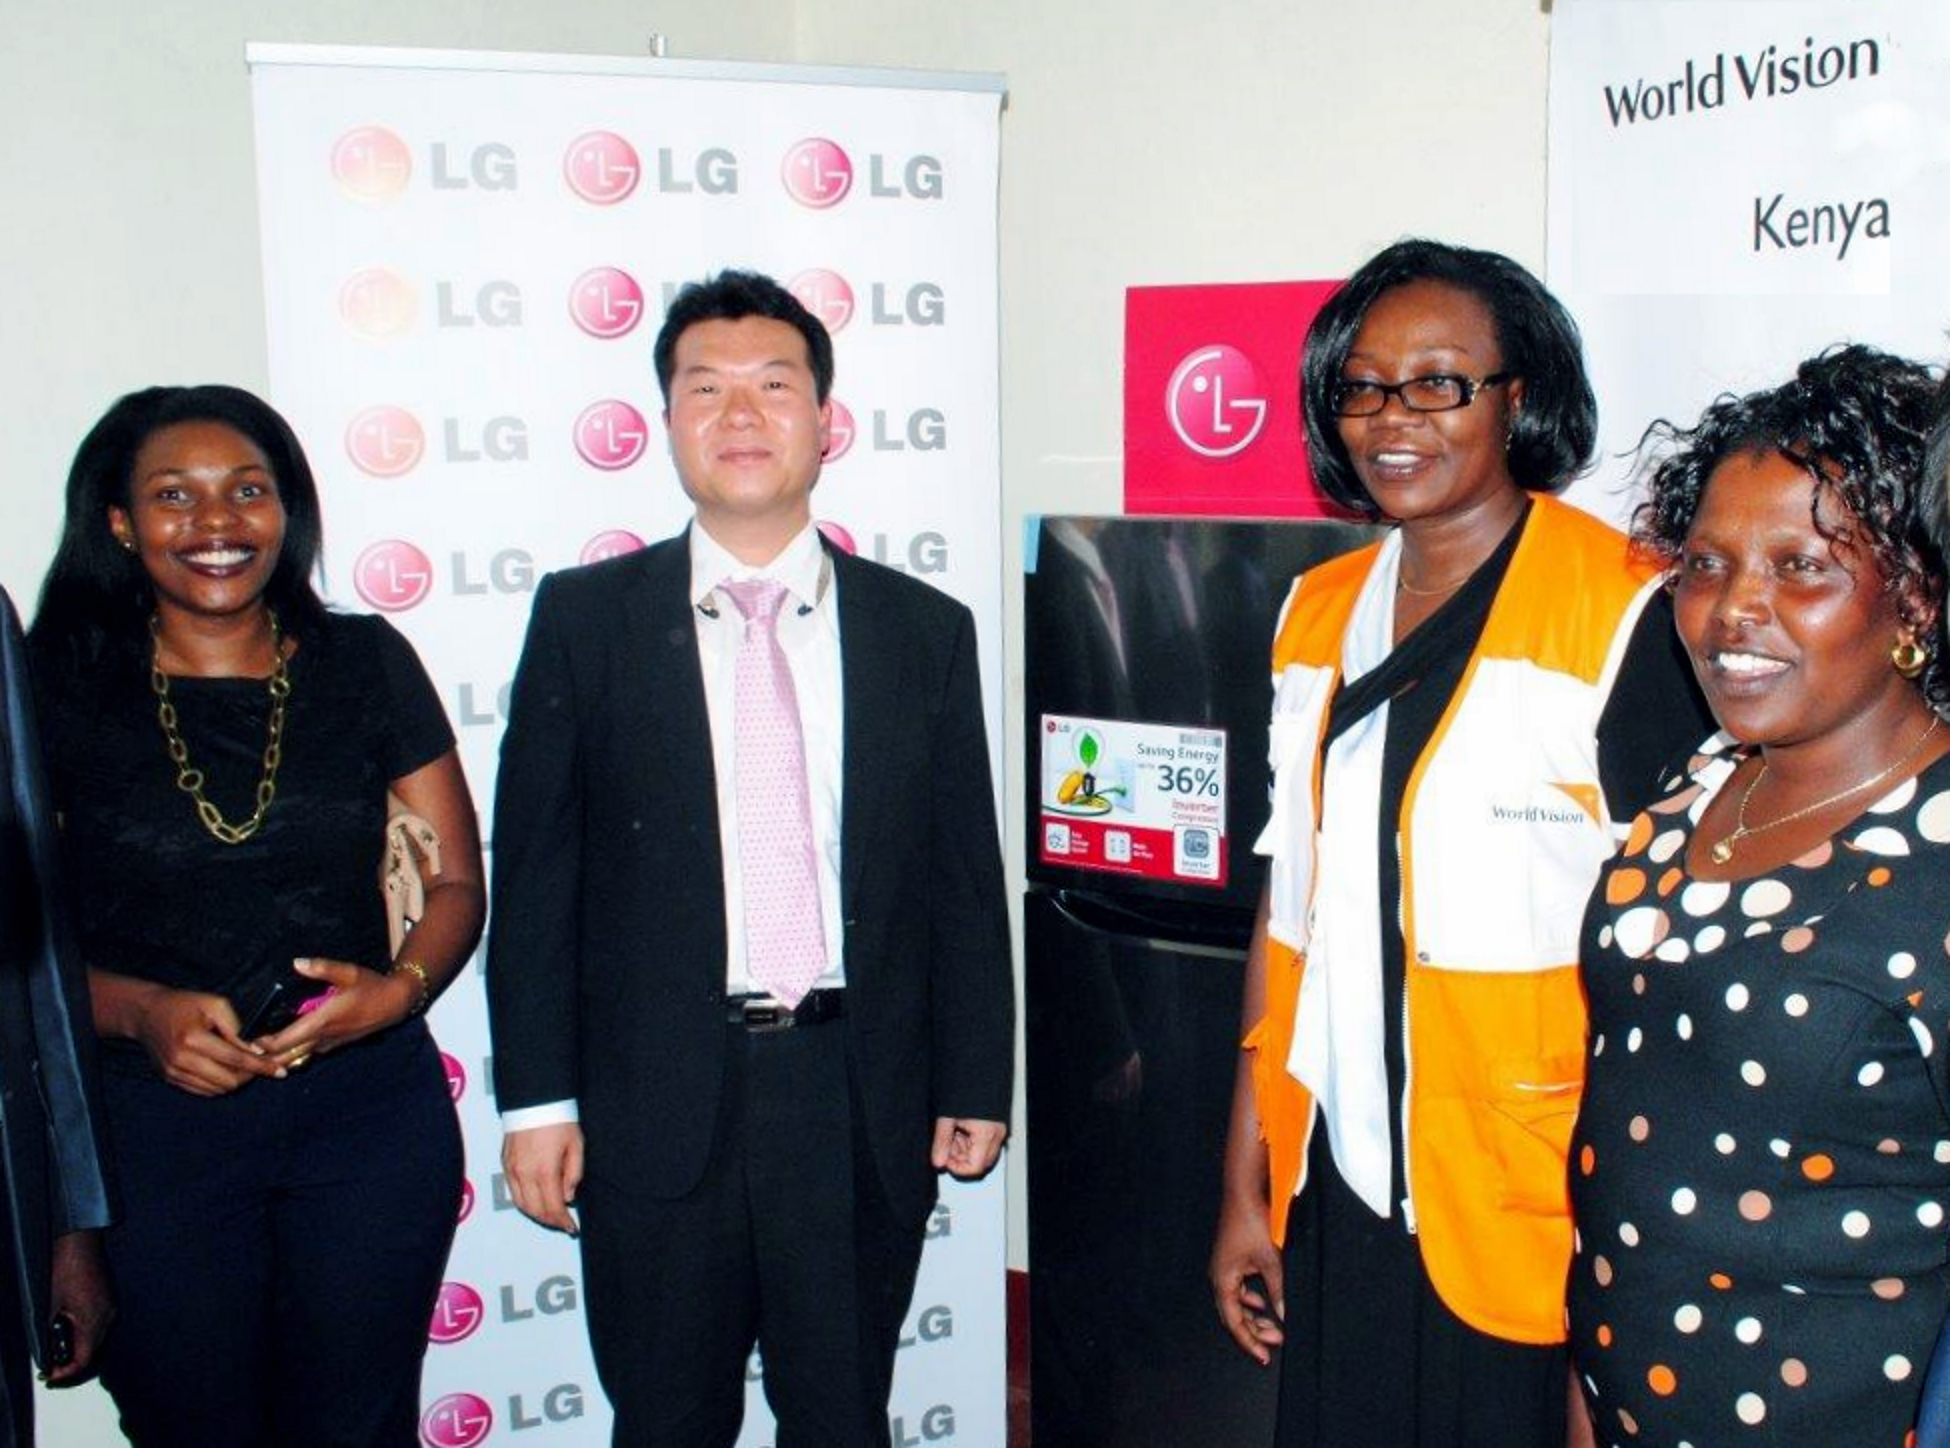 World Vision Kenya will use the LG solar refrigerators to improve immunization coverage among children under five years old as well as among pregnant and lactating women in Kenya's West Pokot County. (image: LG Electronics)